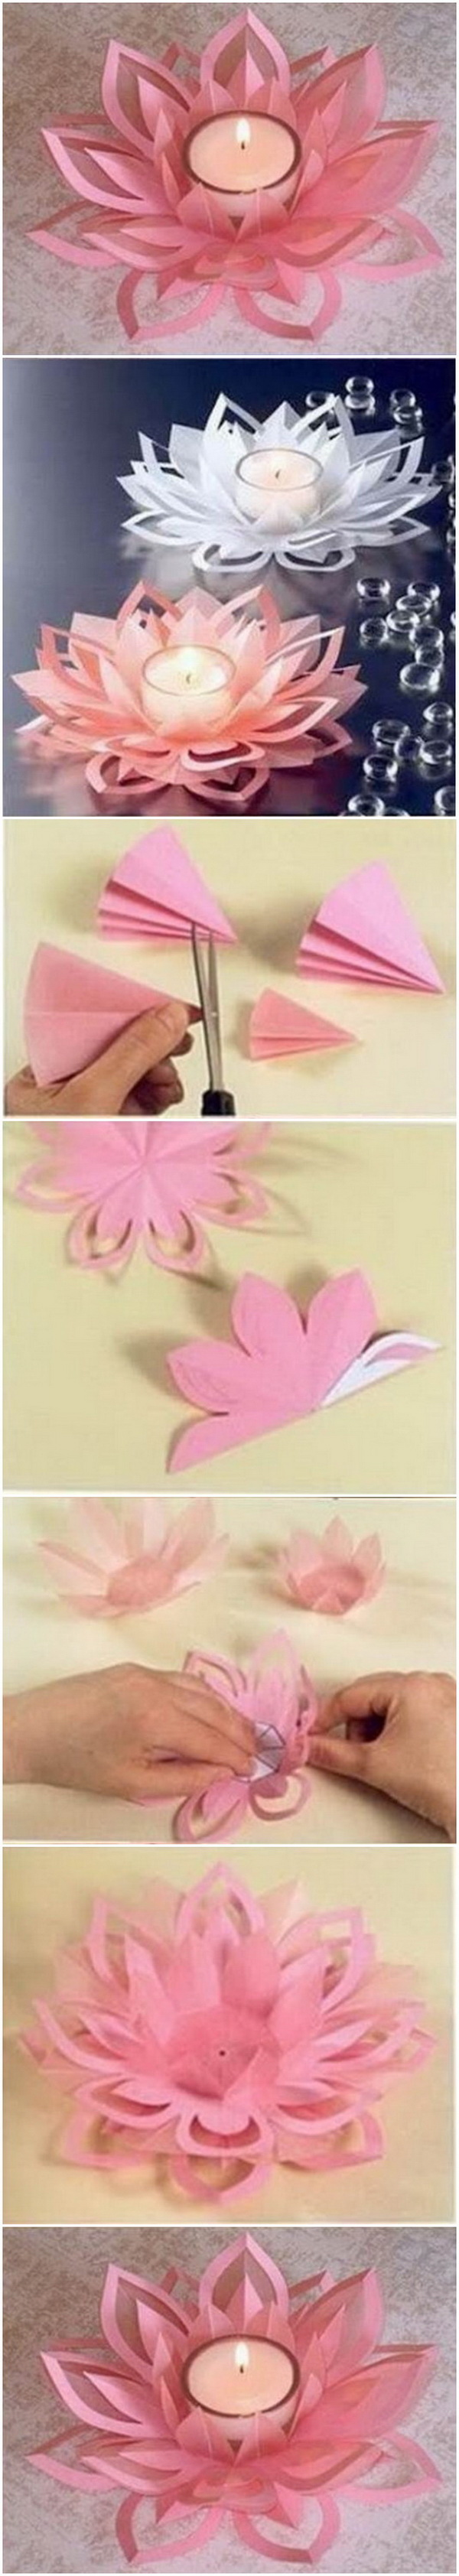 DIY Paper Lotus Candle Holders. Add an Asian touch to your wardrobe or create an original floating centerpiece with these beautiful handmade paper lotus  candles.